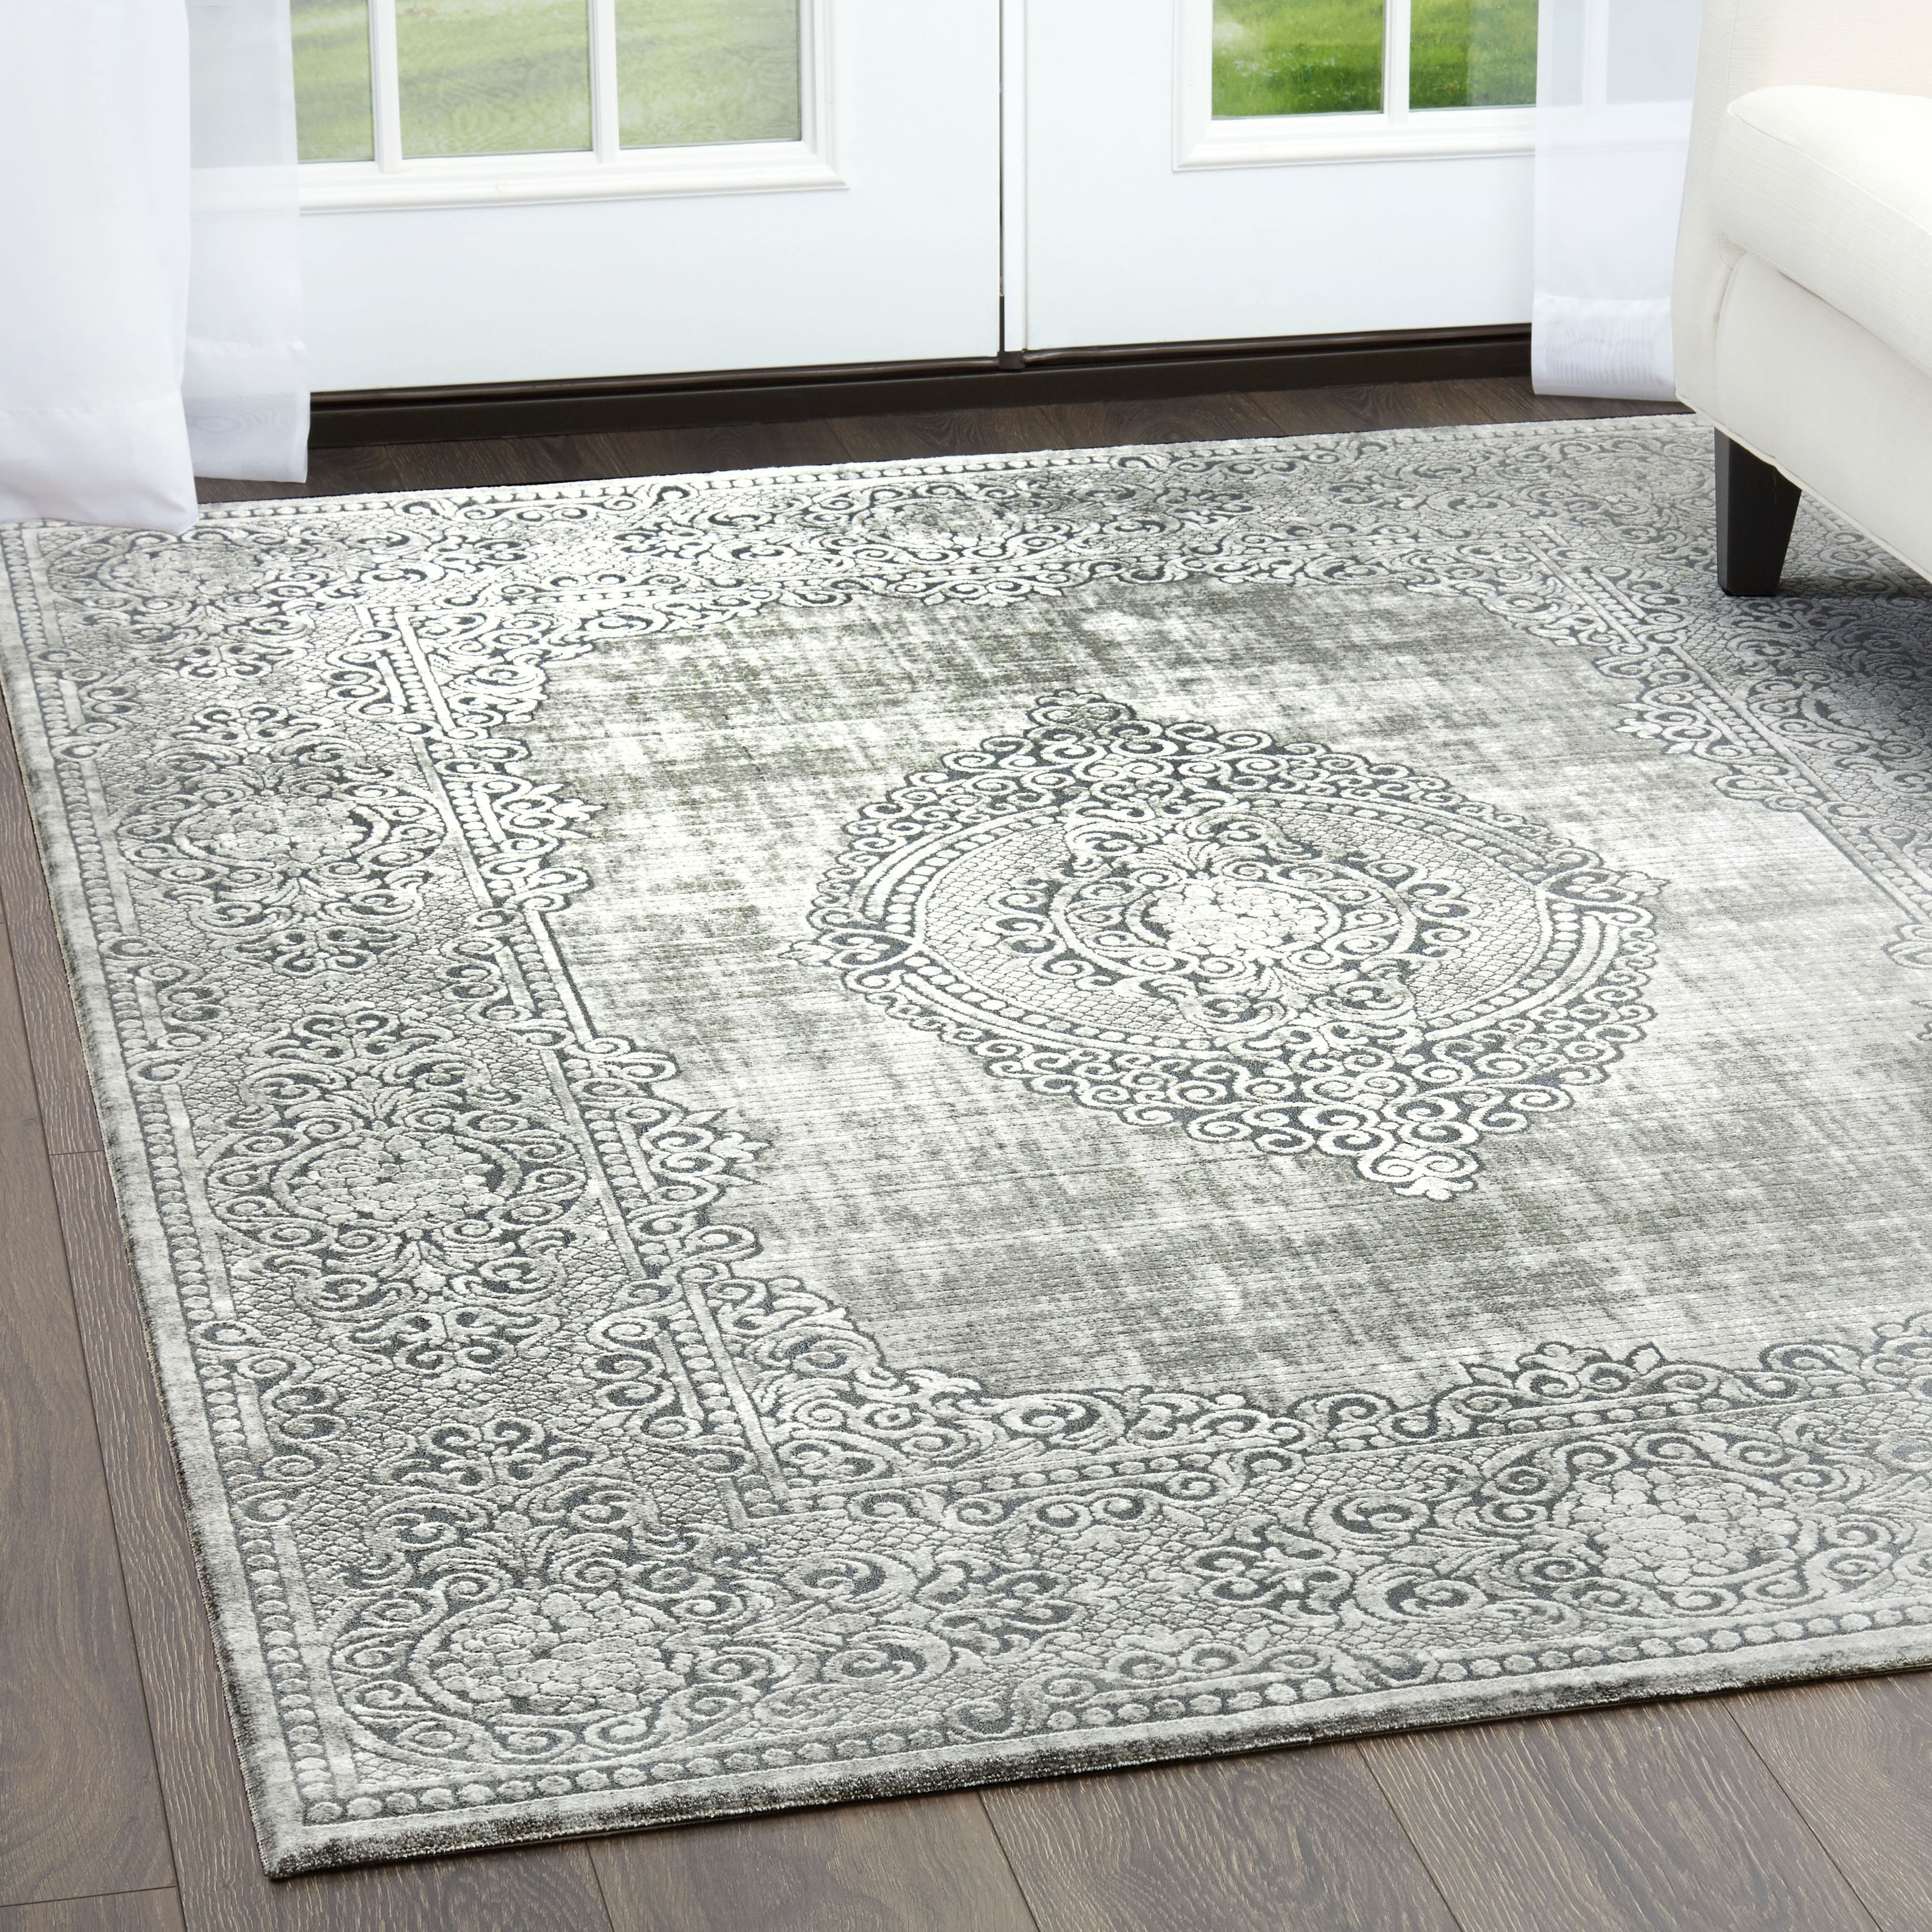 reviews pdp area dorothea home rug wayfair rugs ca gray charlton